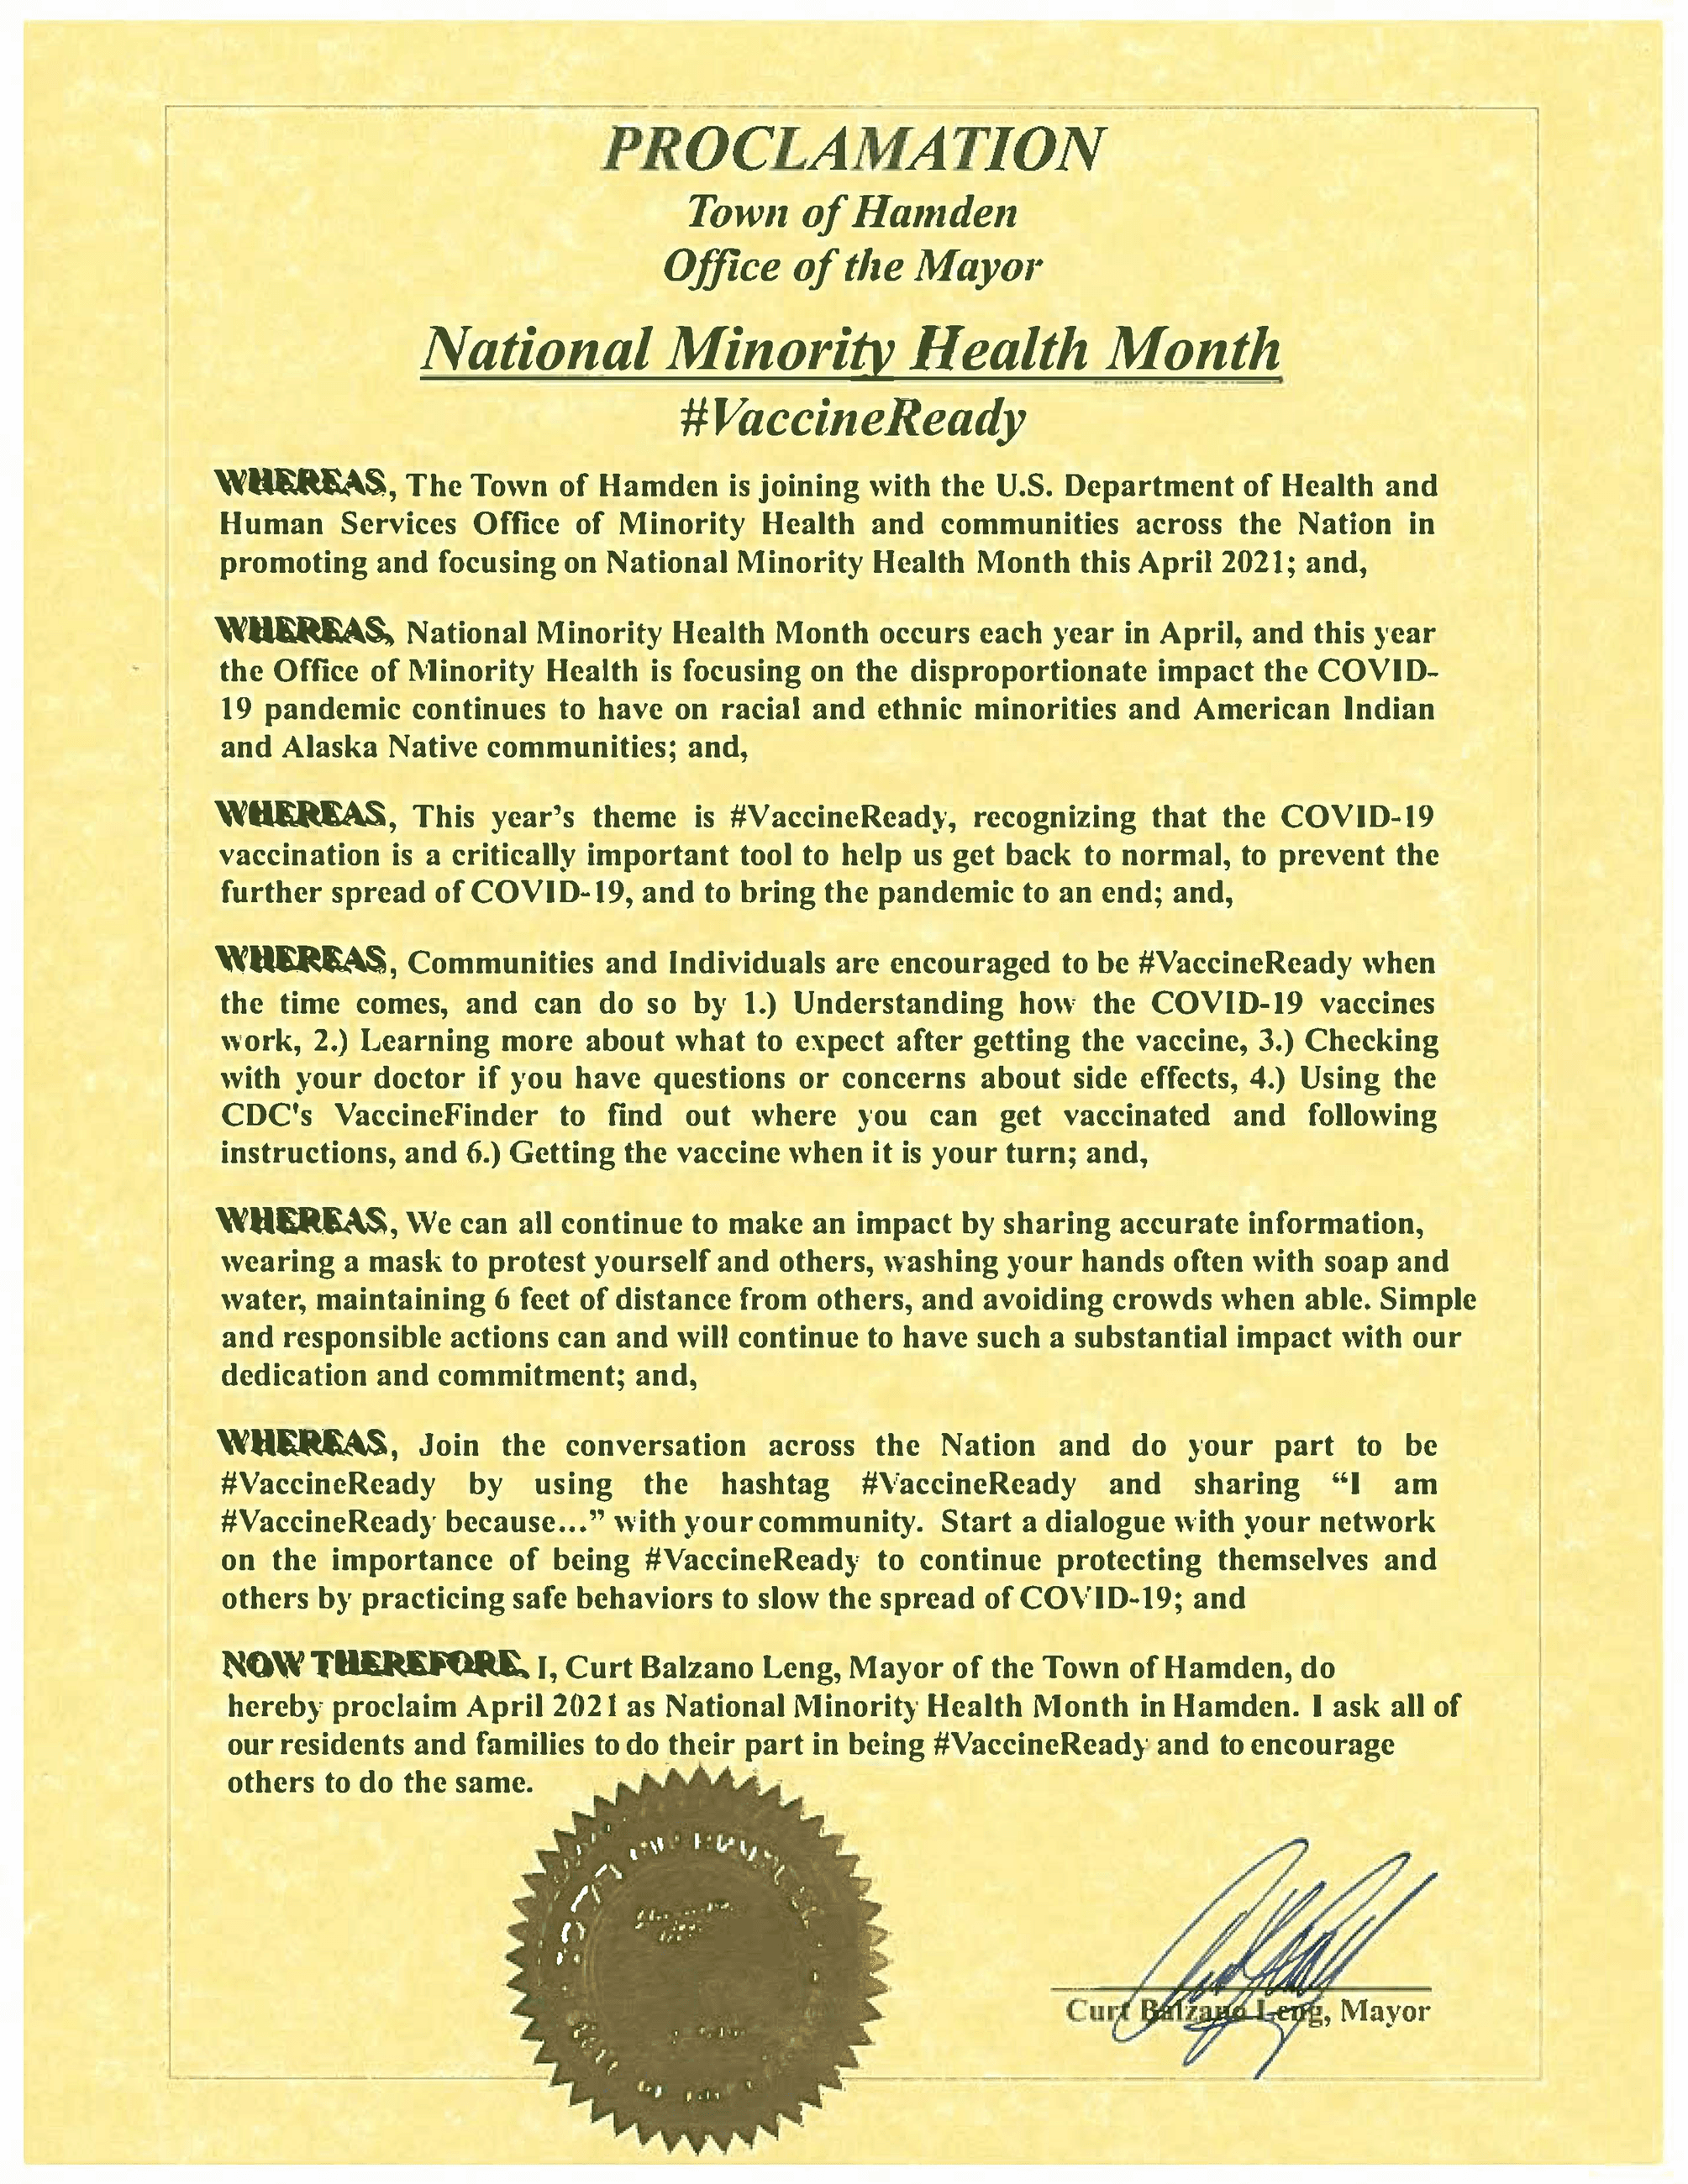 04-14-21 - Proc - National Minority Health Month